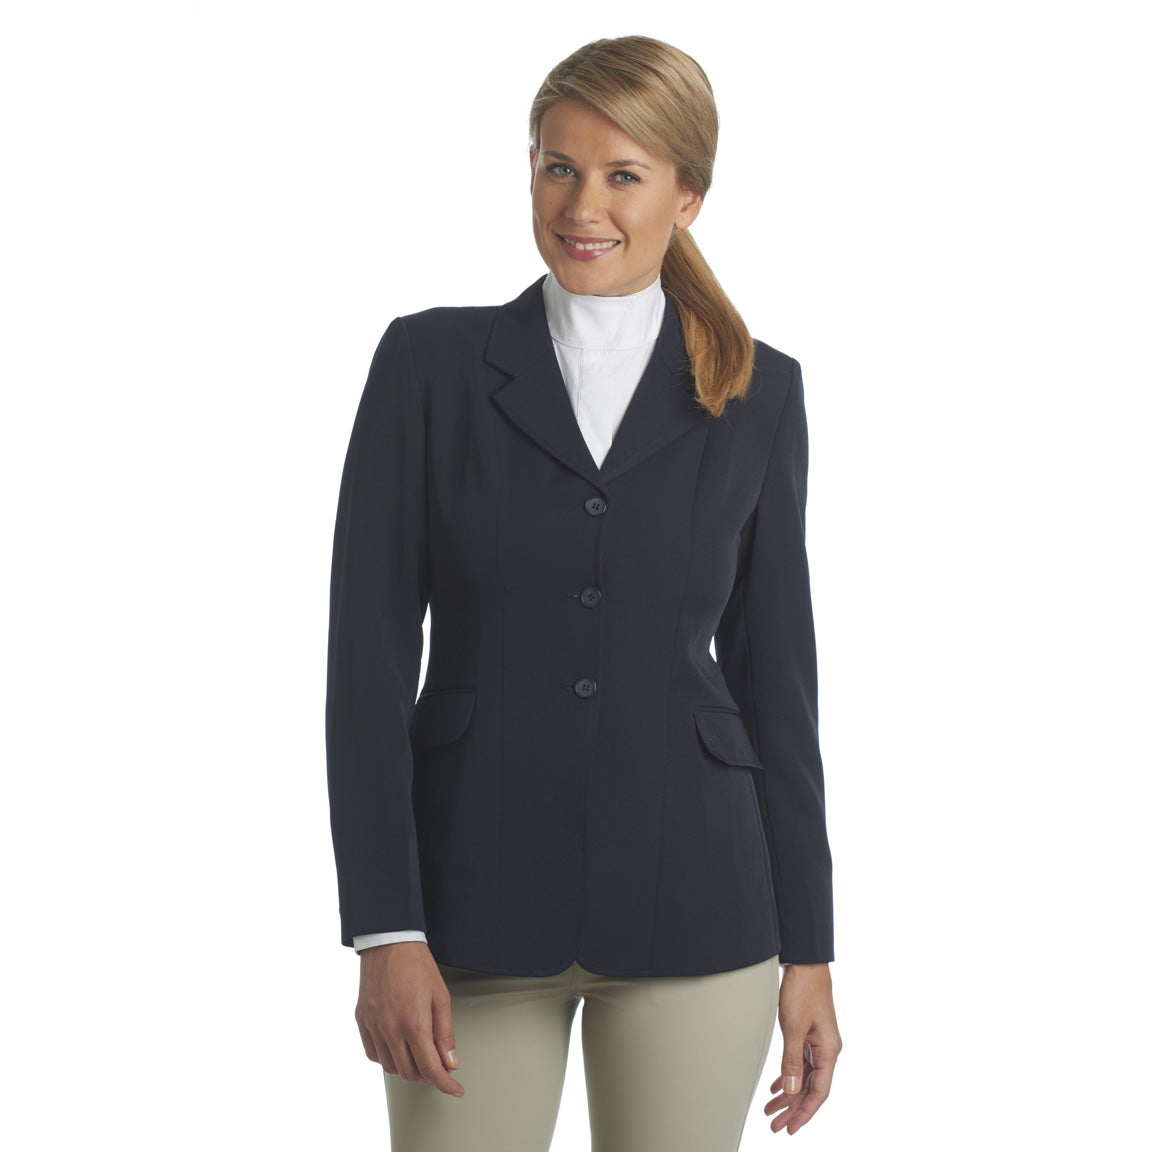 OVATION LADIES CLASSIC PERFORMANCE SHOW COAT